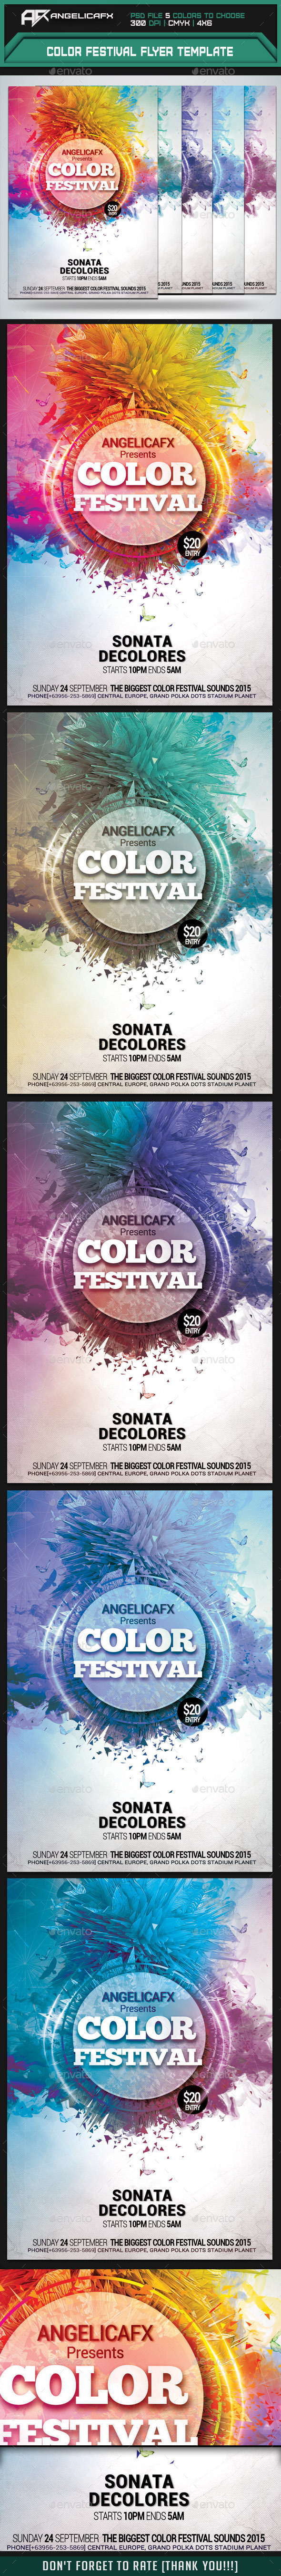 Color Festival Flyer Template - Flyers Print Templates